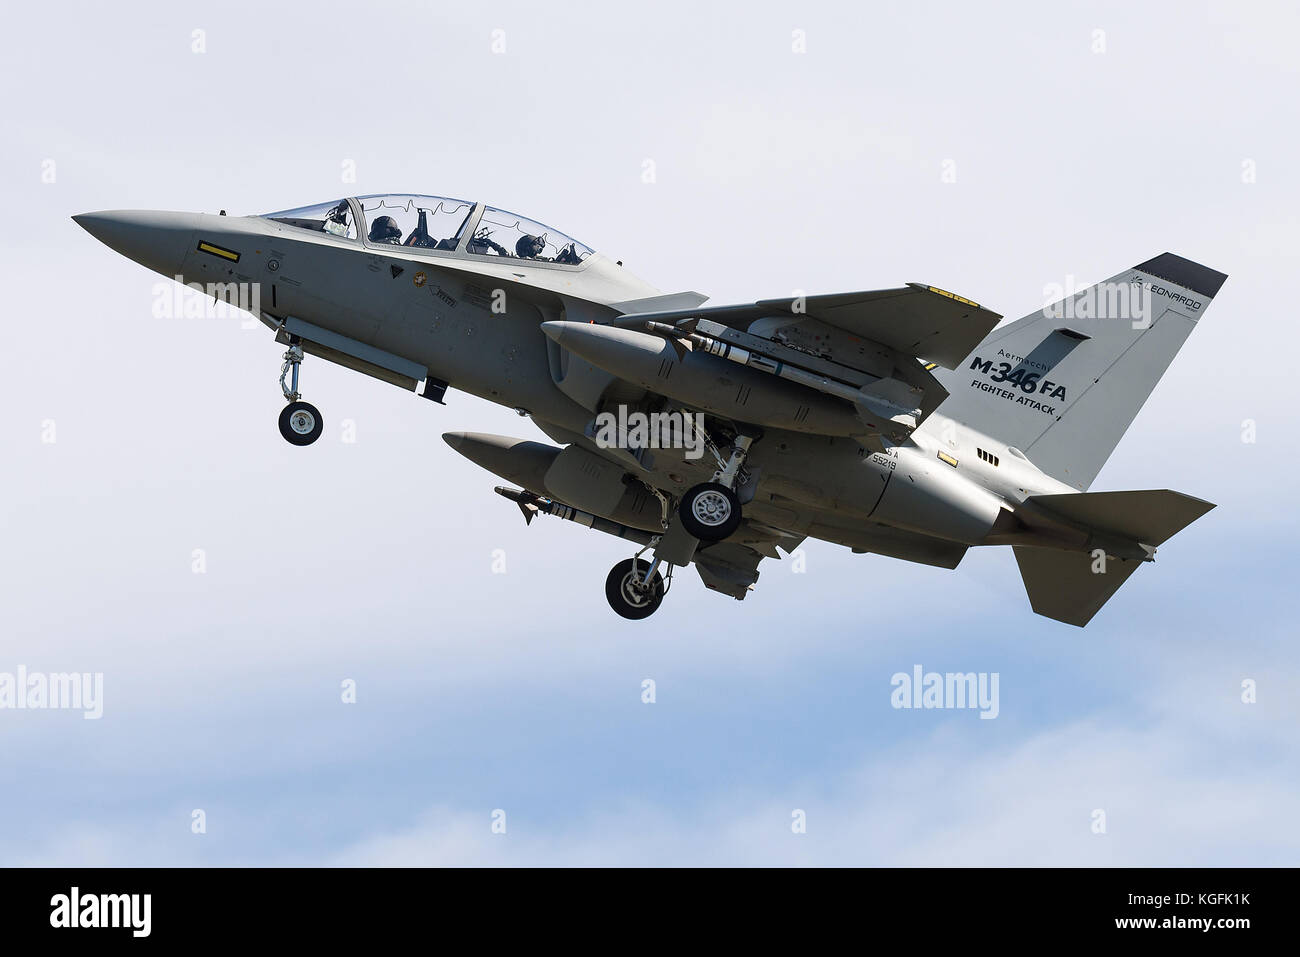 The Alenia Aermacchi M-346 Master military twin-engine transonic trainer aircraft is taking off from RAF Fairford. - Stock Image